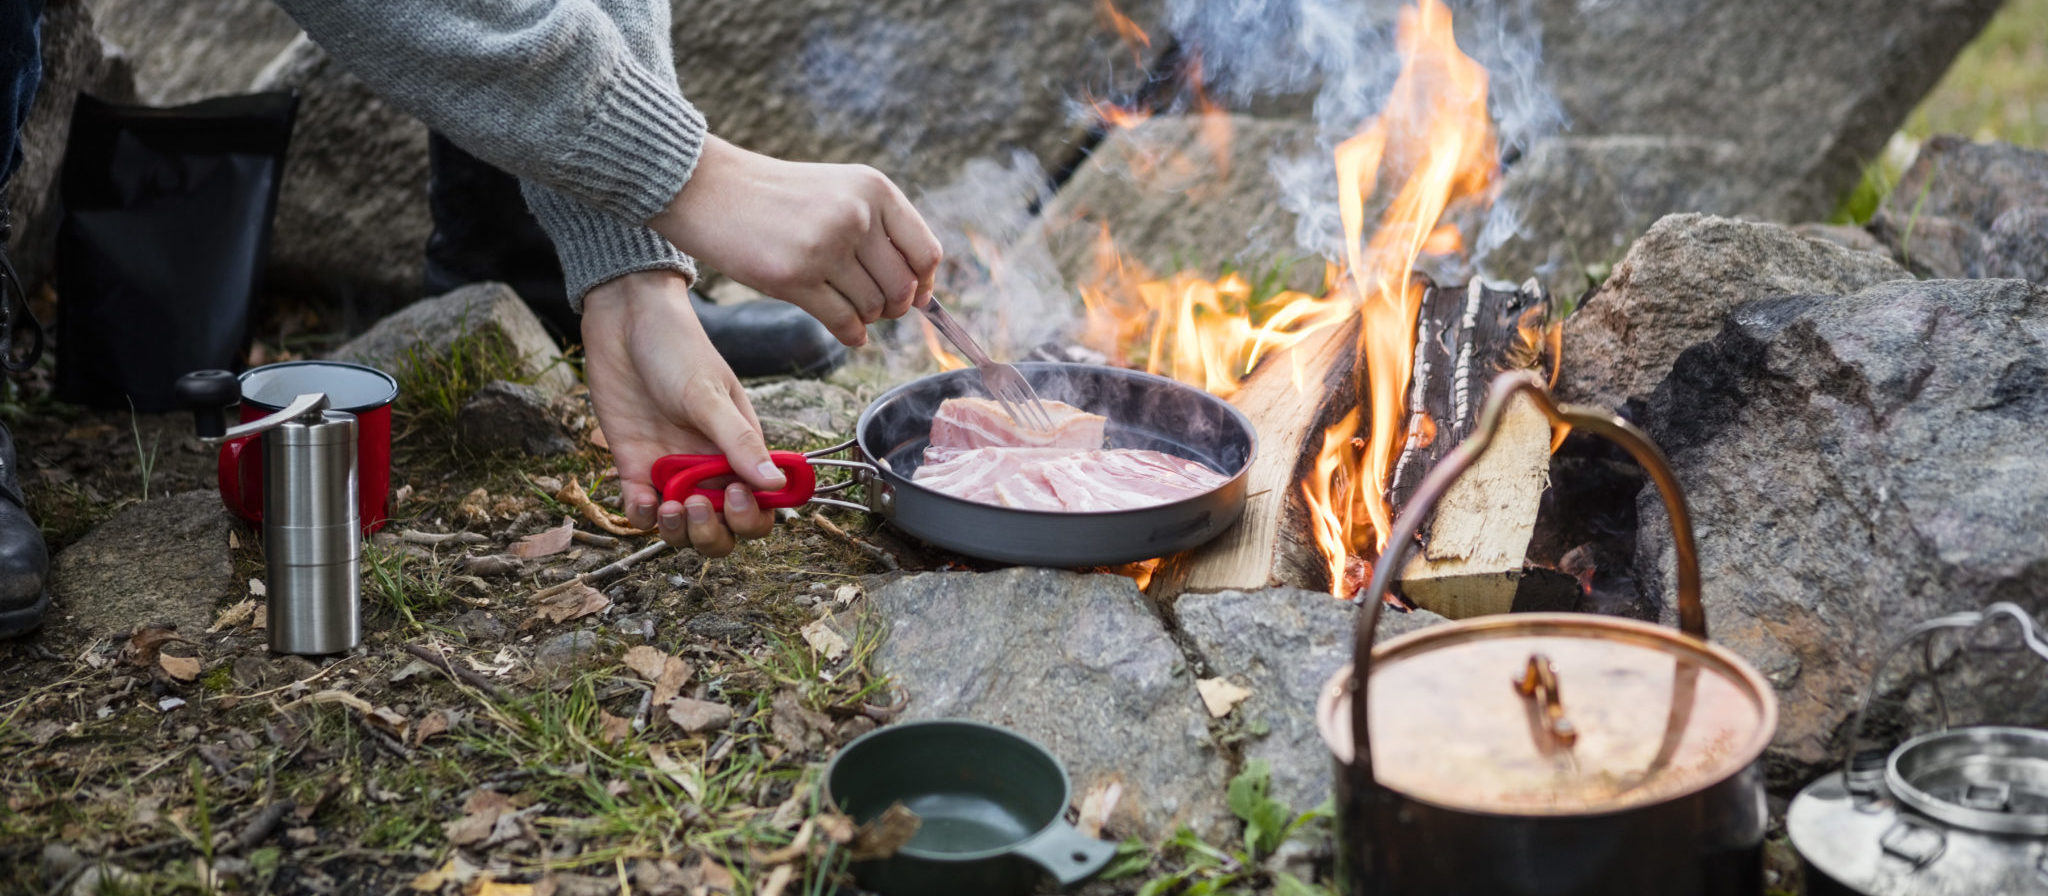 Camping Cooking Equipment List